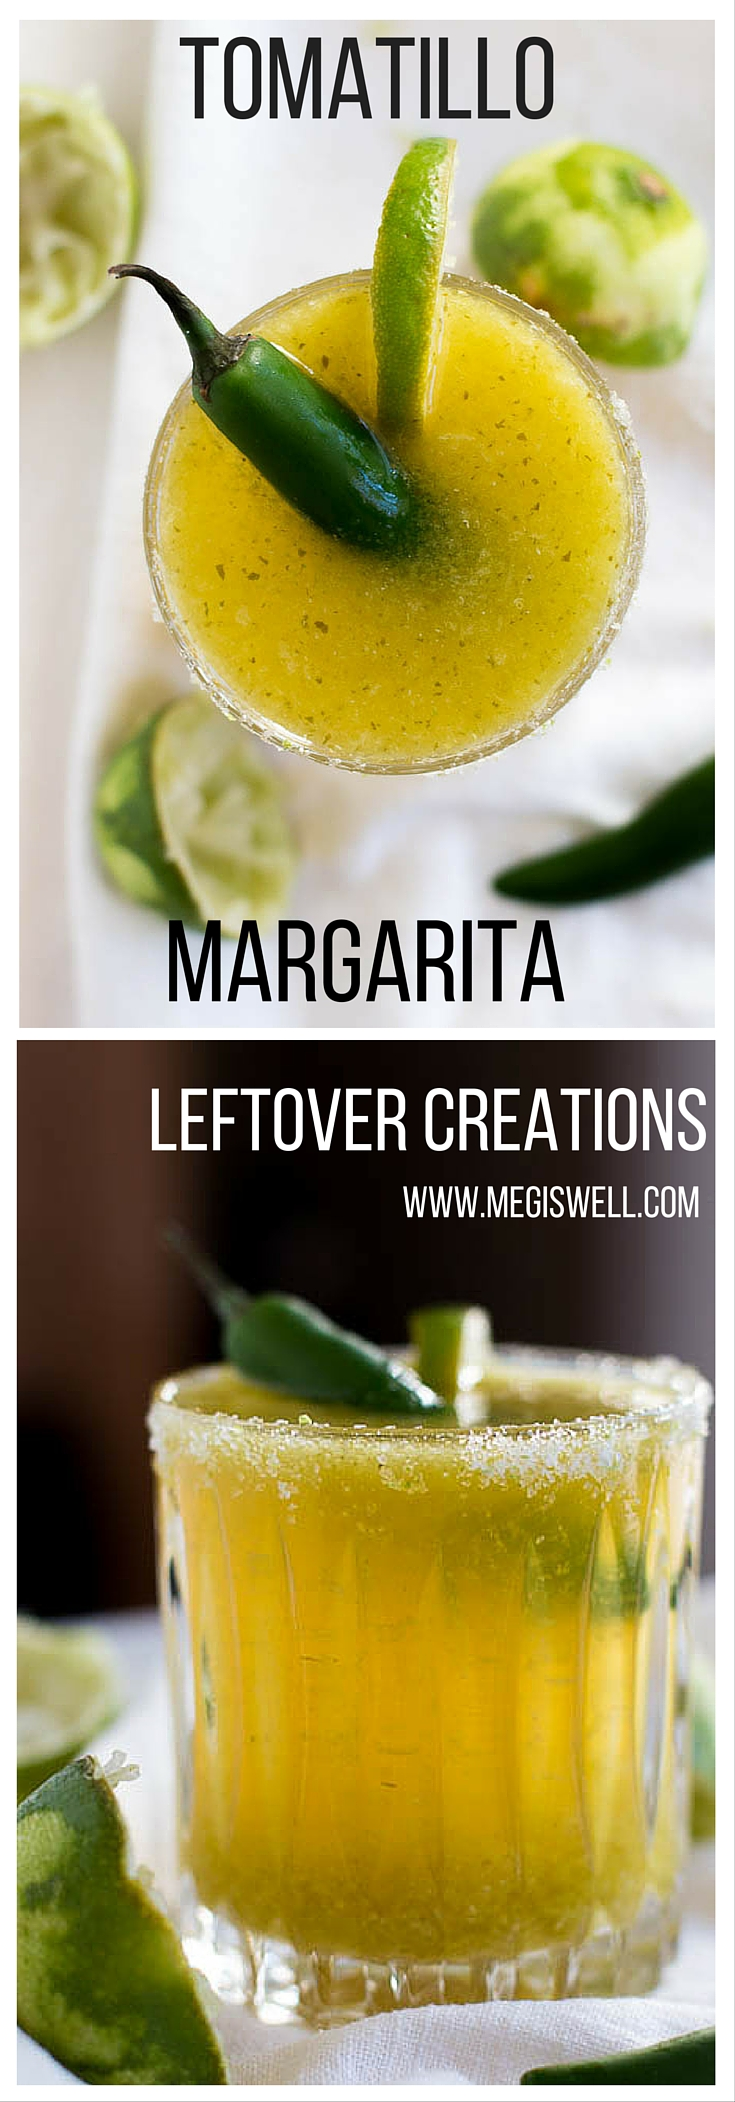 Turn your leftover tomatillo salsa into a tasty Tomatillo Margarita, giving the classic margarita a spicy twist.